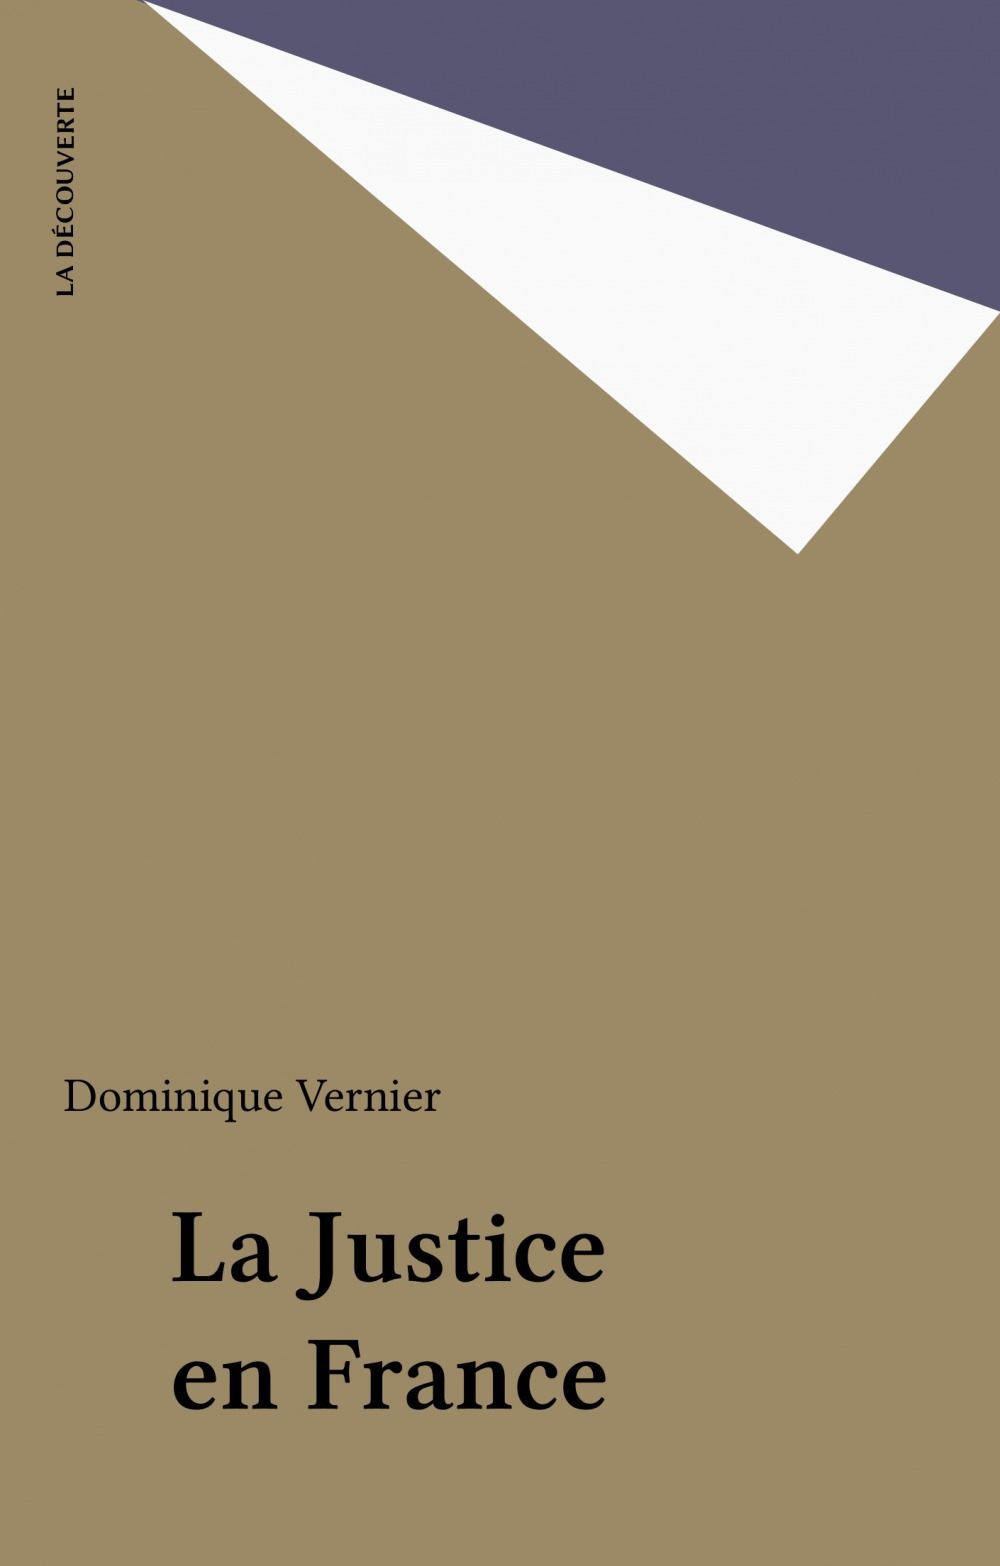 Dominique Vernier La Justice en France